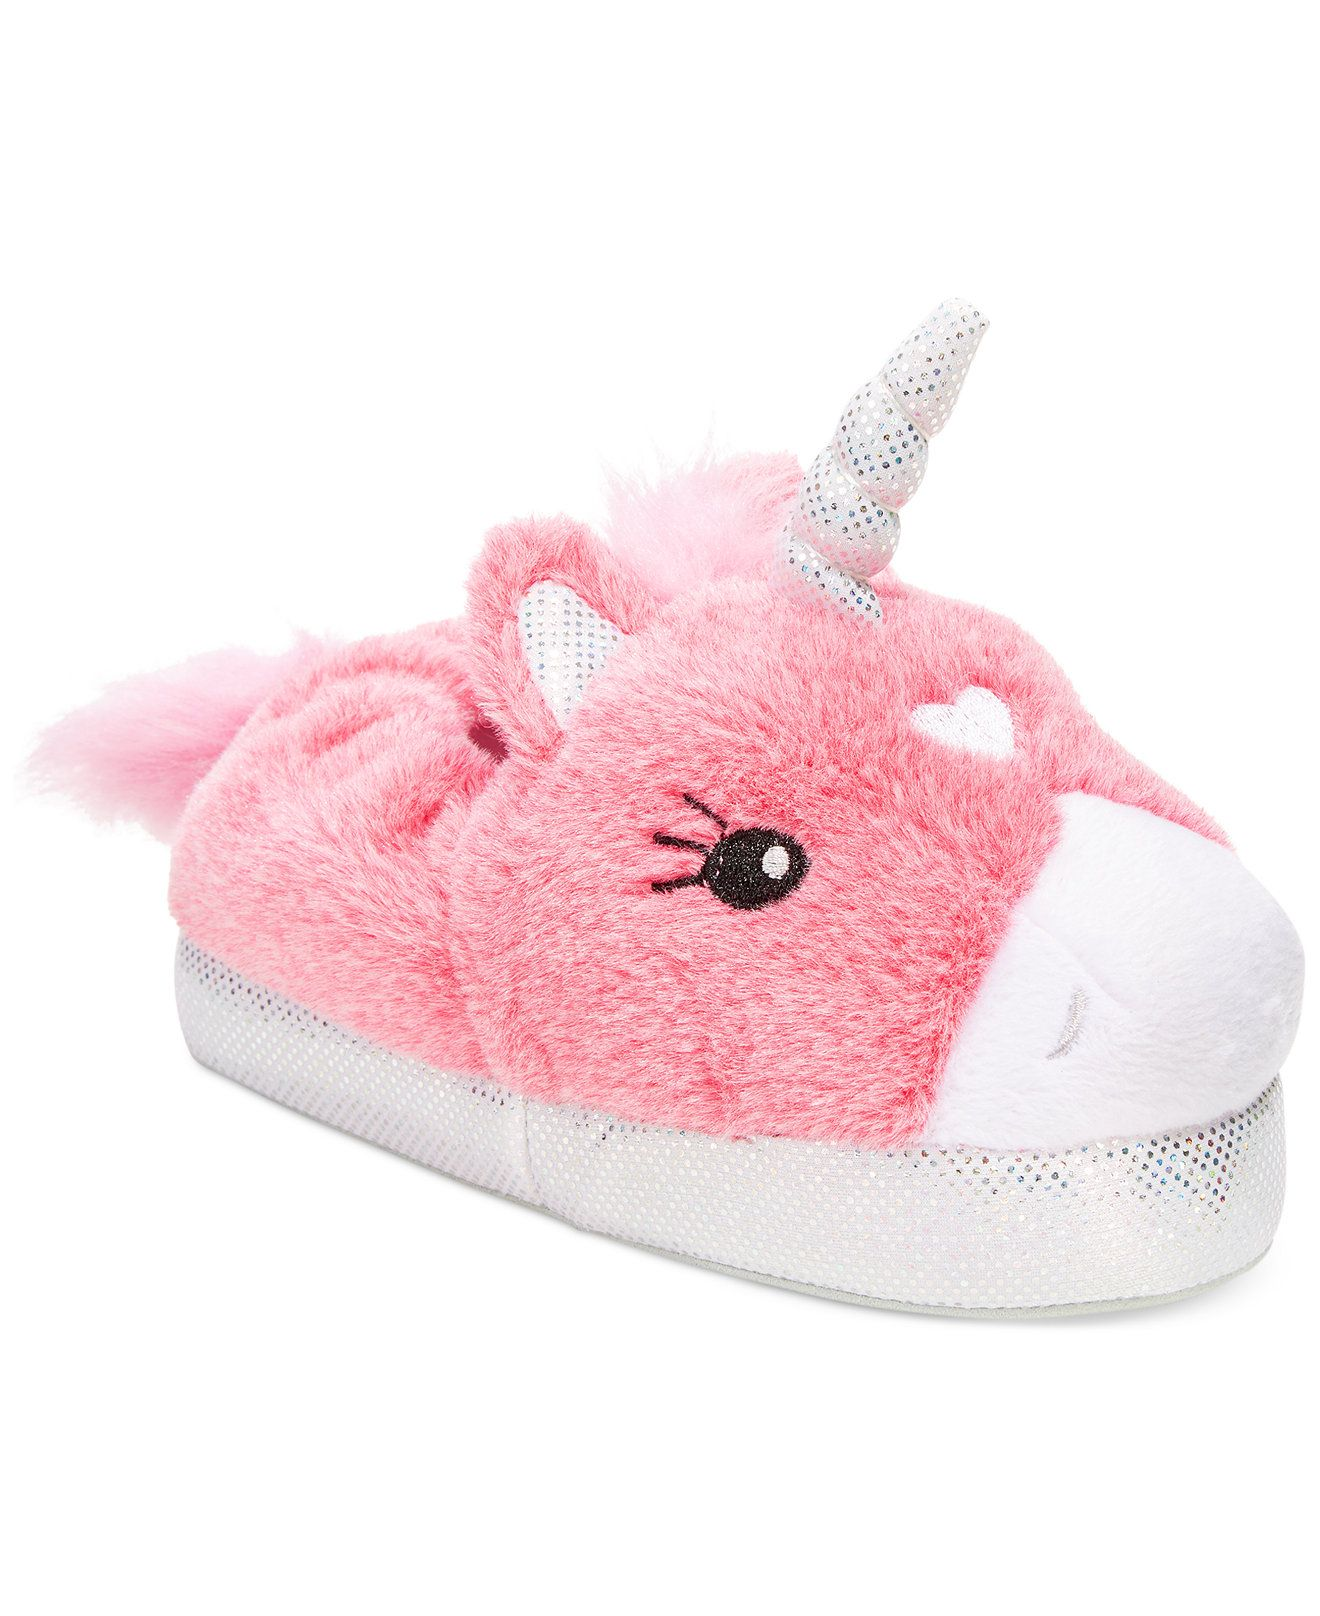 2bde44e80d03 Stride Rite Little Girls  or Toddler Girls  Light-Up Unicorn Slippers - Kids    Baby - Macy s